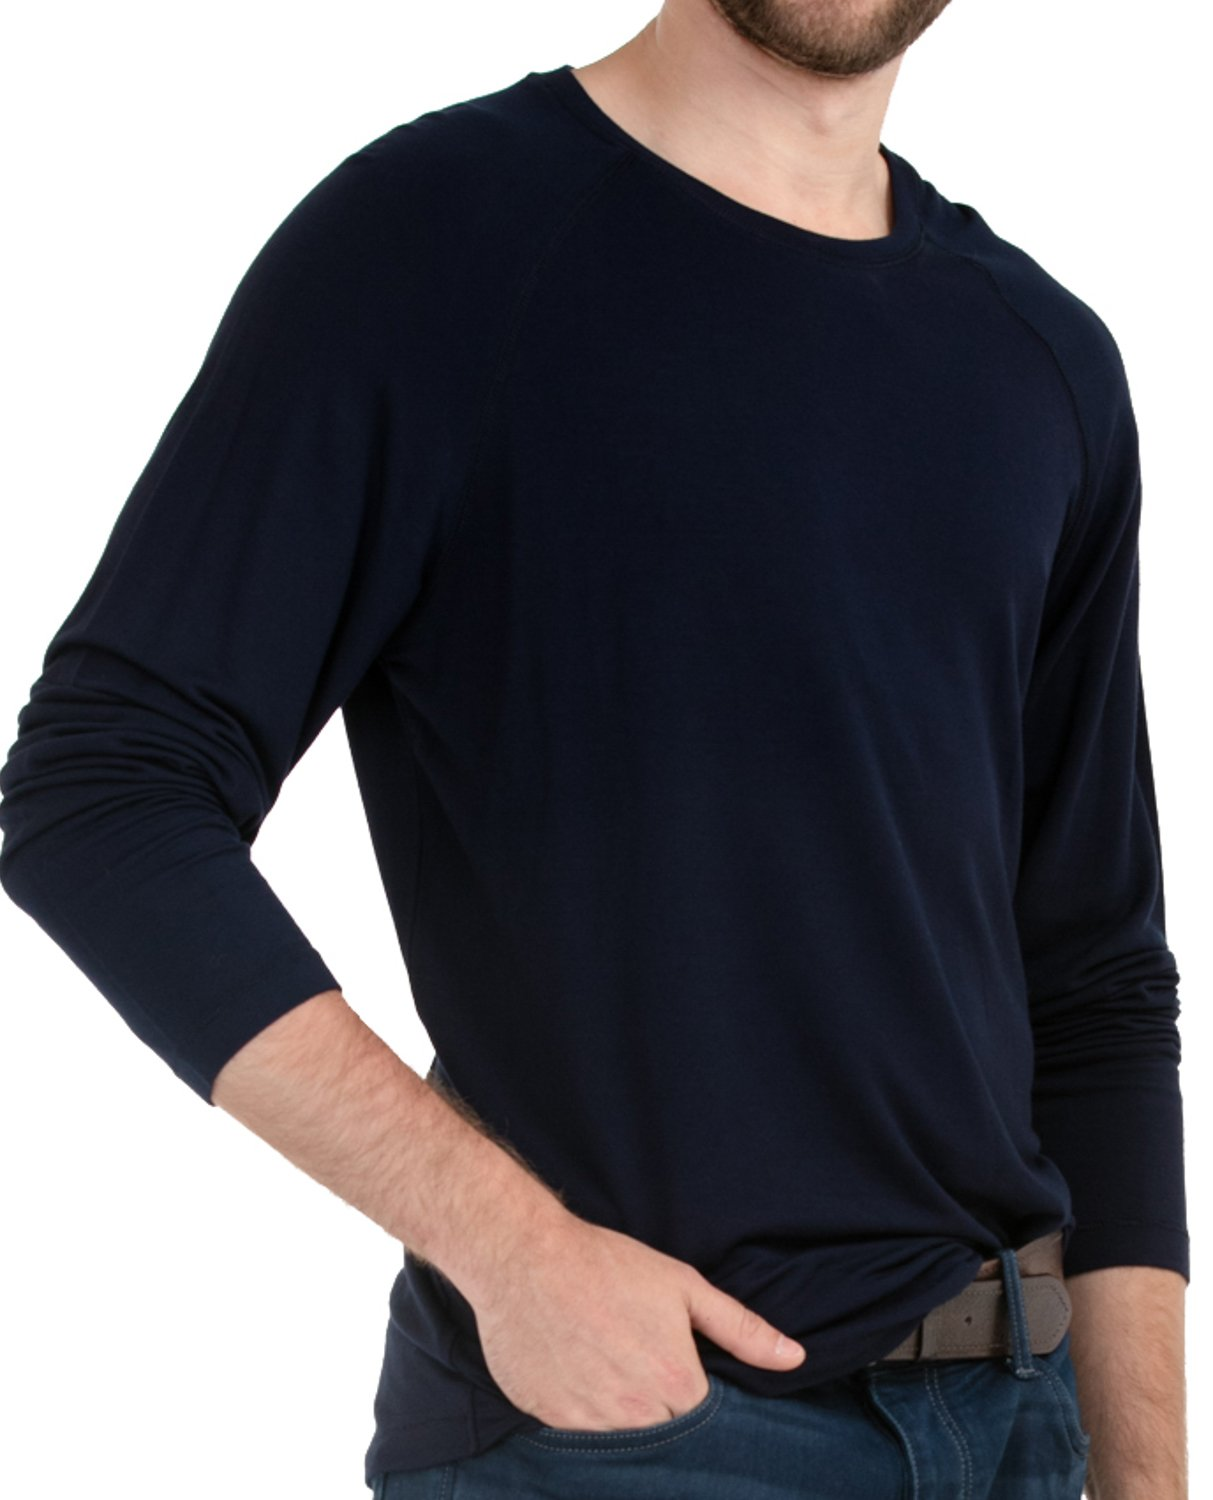 LNBF Men's Apparel Viscose from Bamboo Long Sleeve Raglan Leave Nothing But Footprints